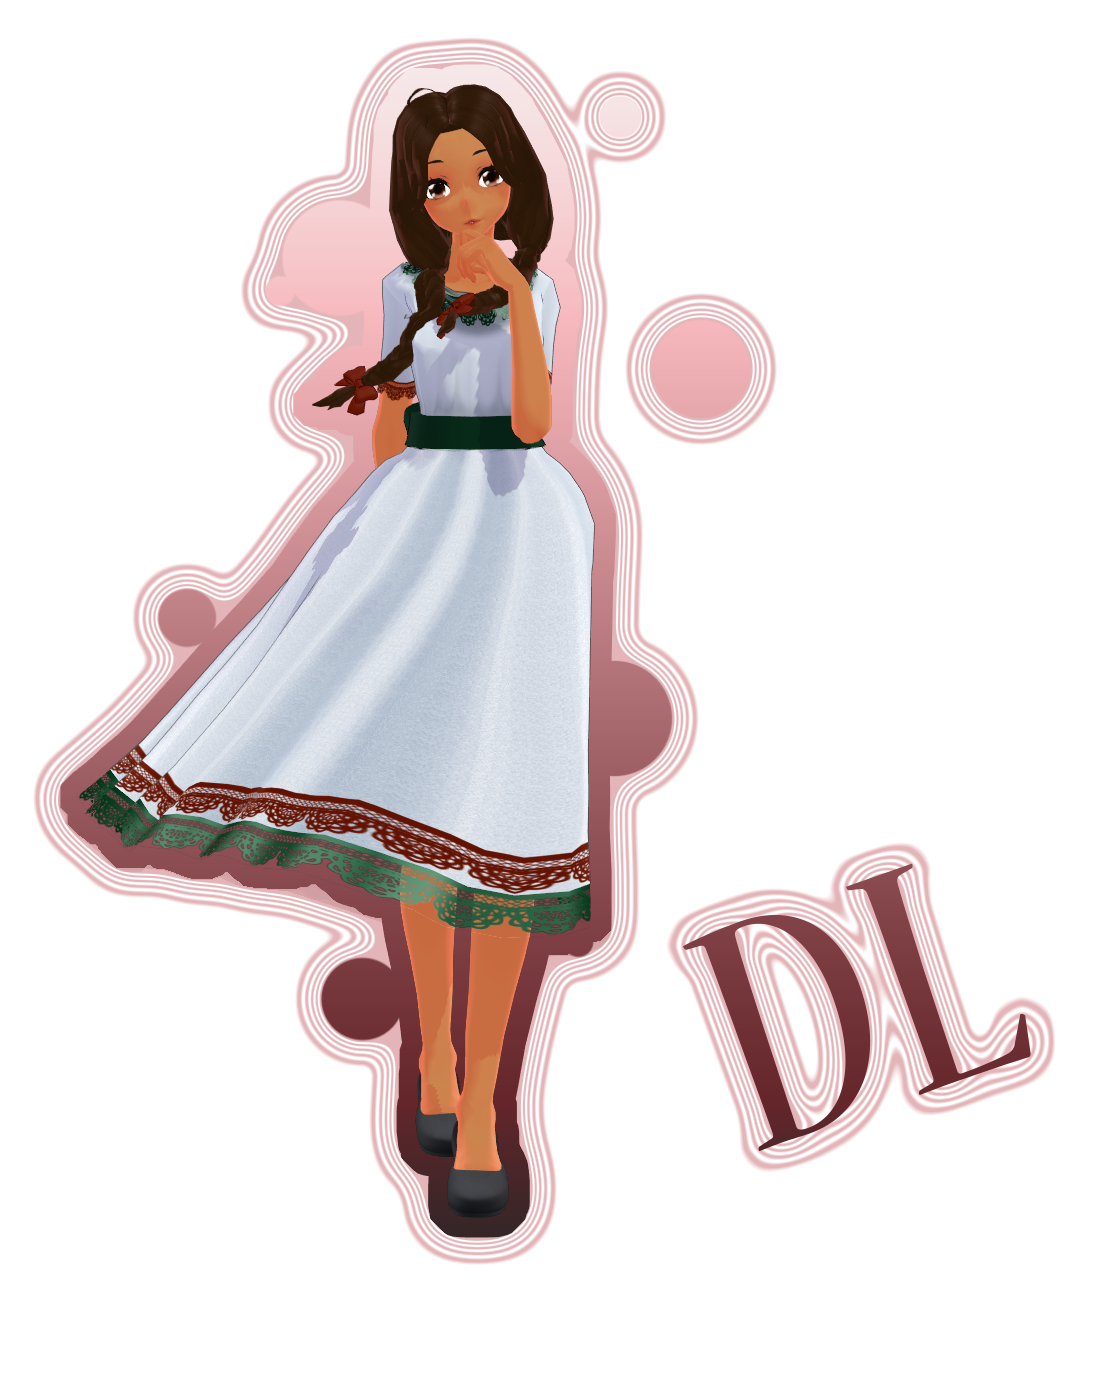 Charra drawing hispanic girl. Aph oc mexico mmd